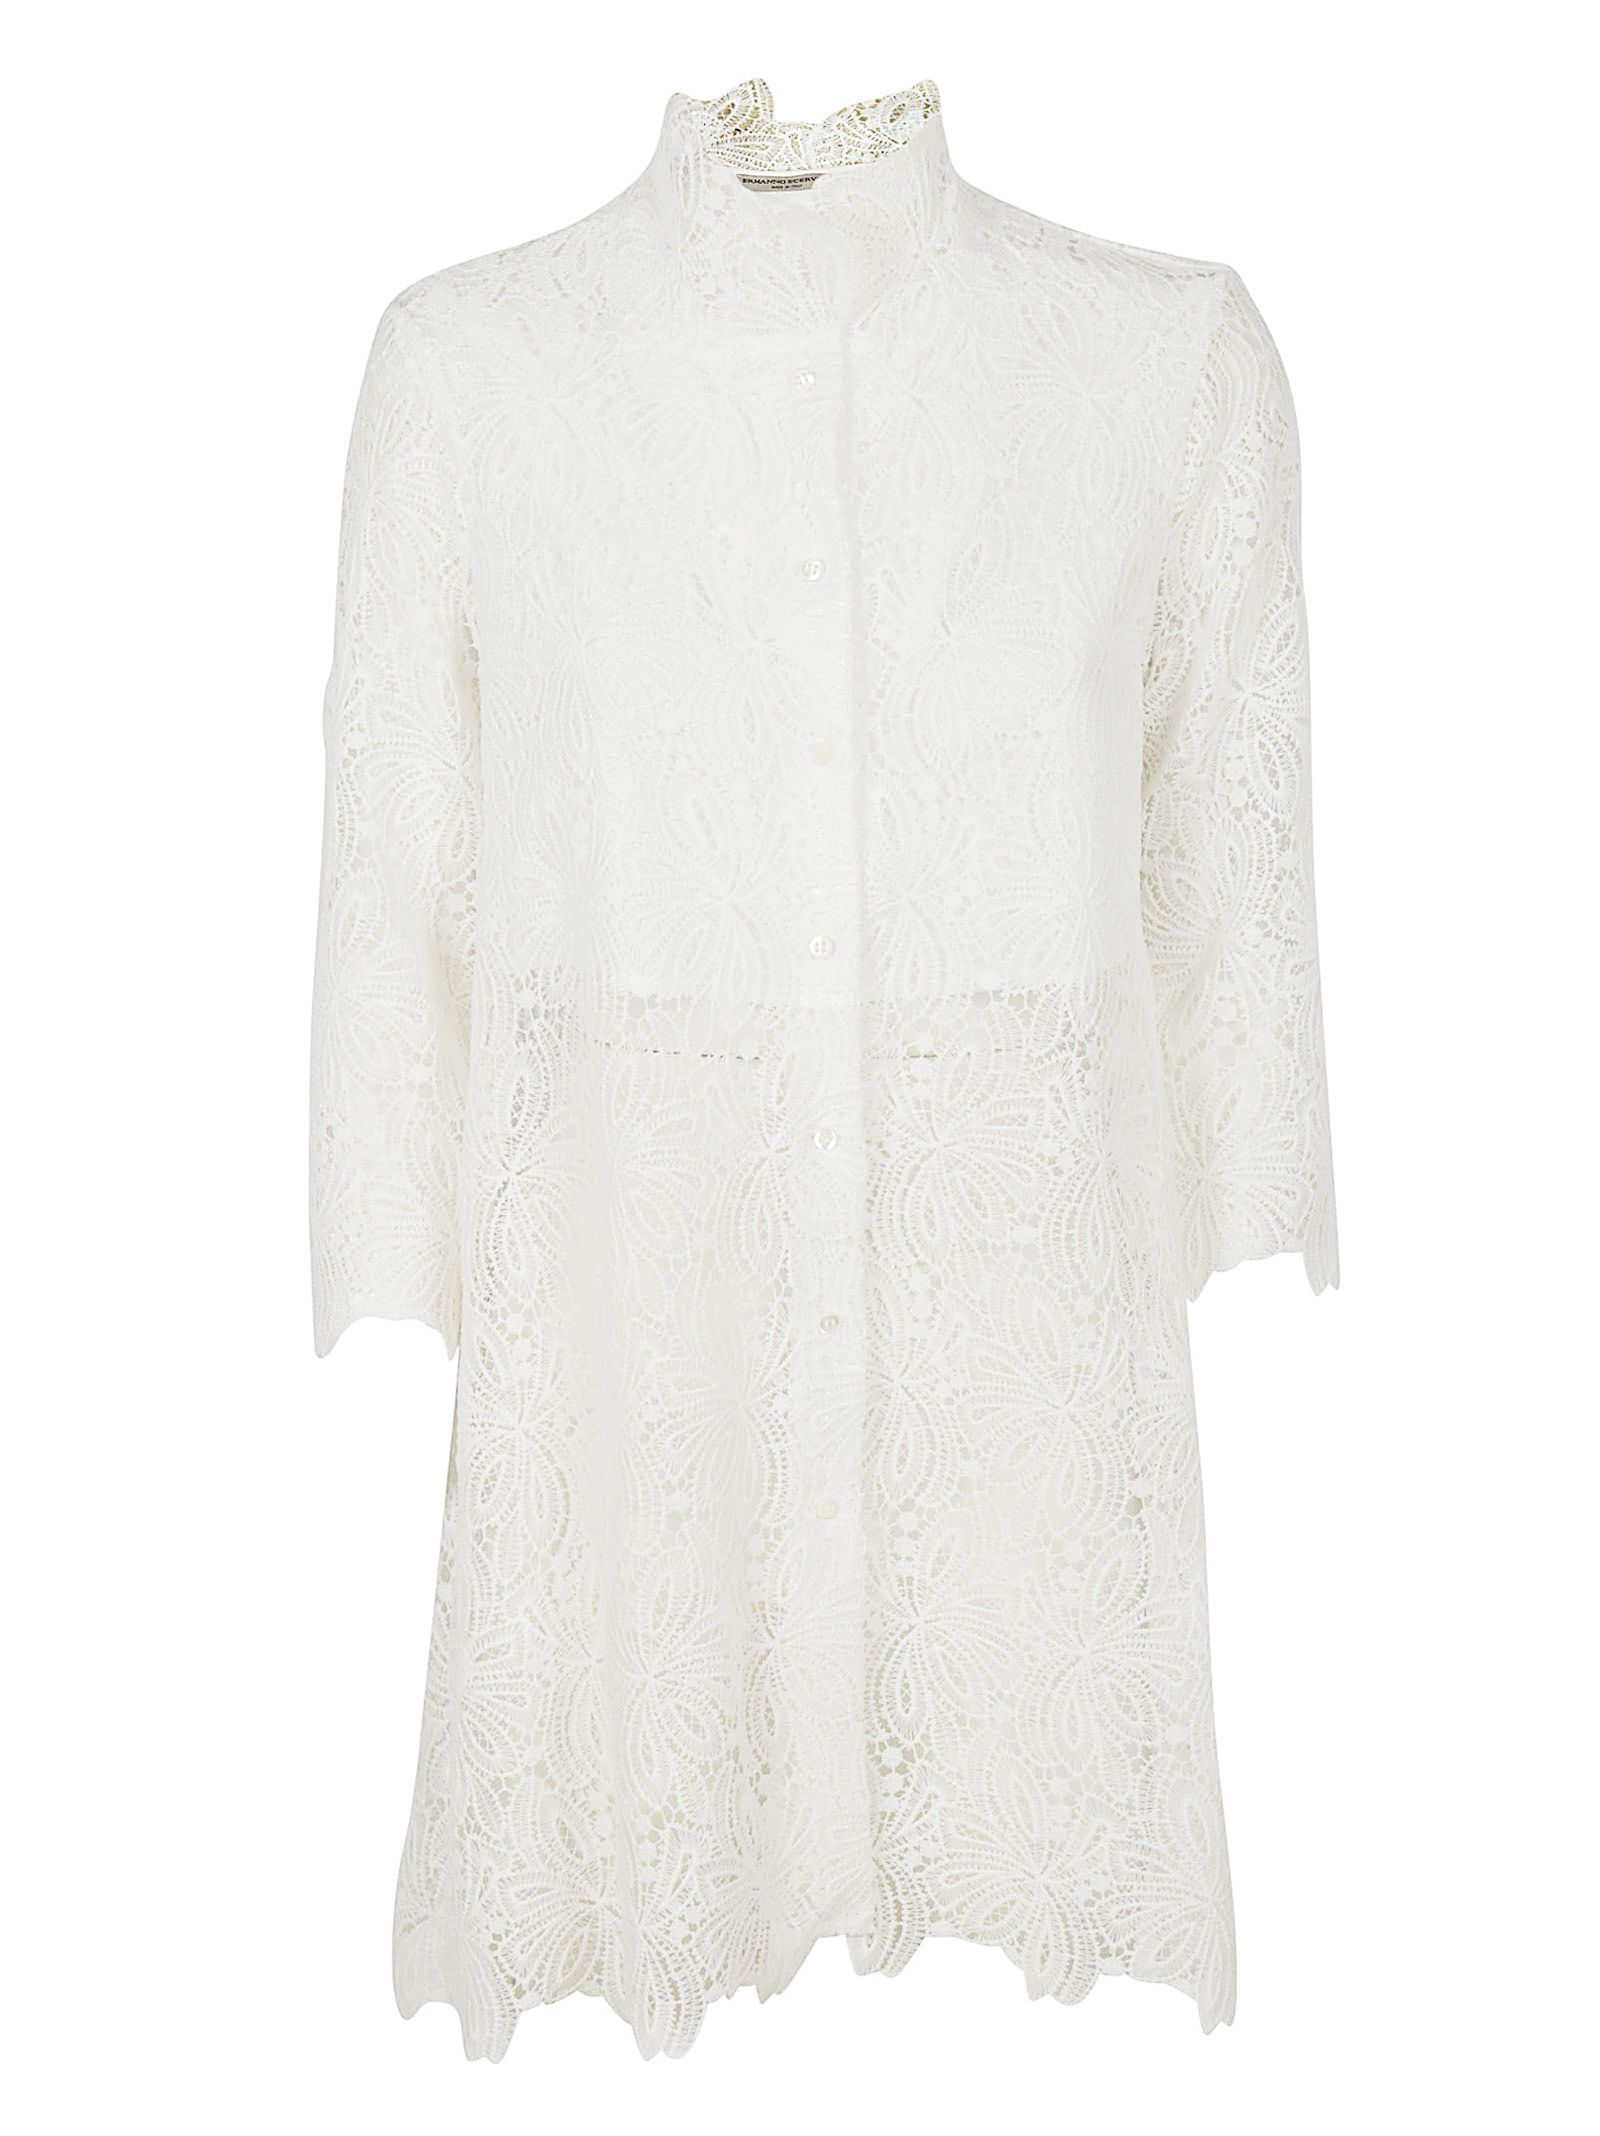 Ermanno Scervino Ermanno Scervino Lace Dress